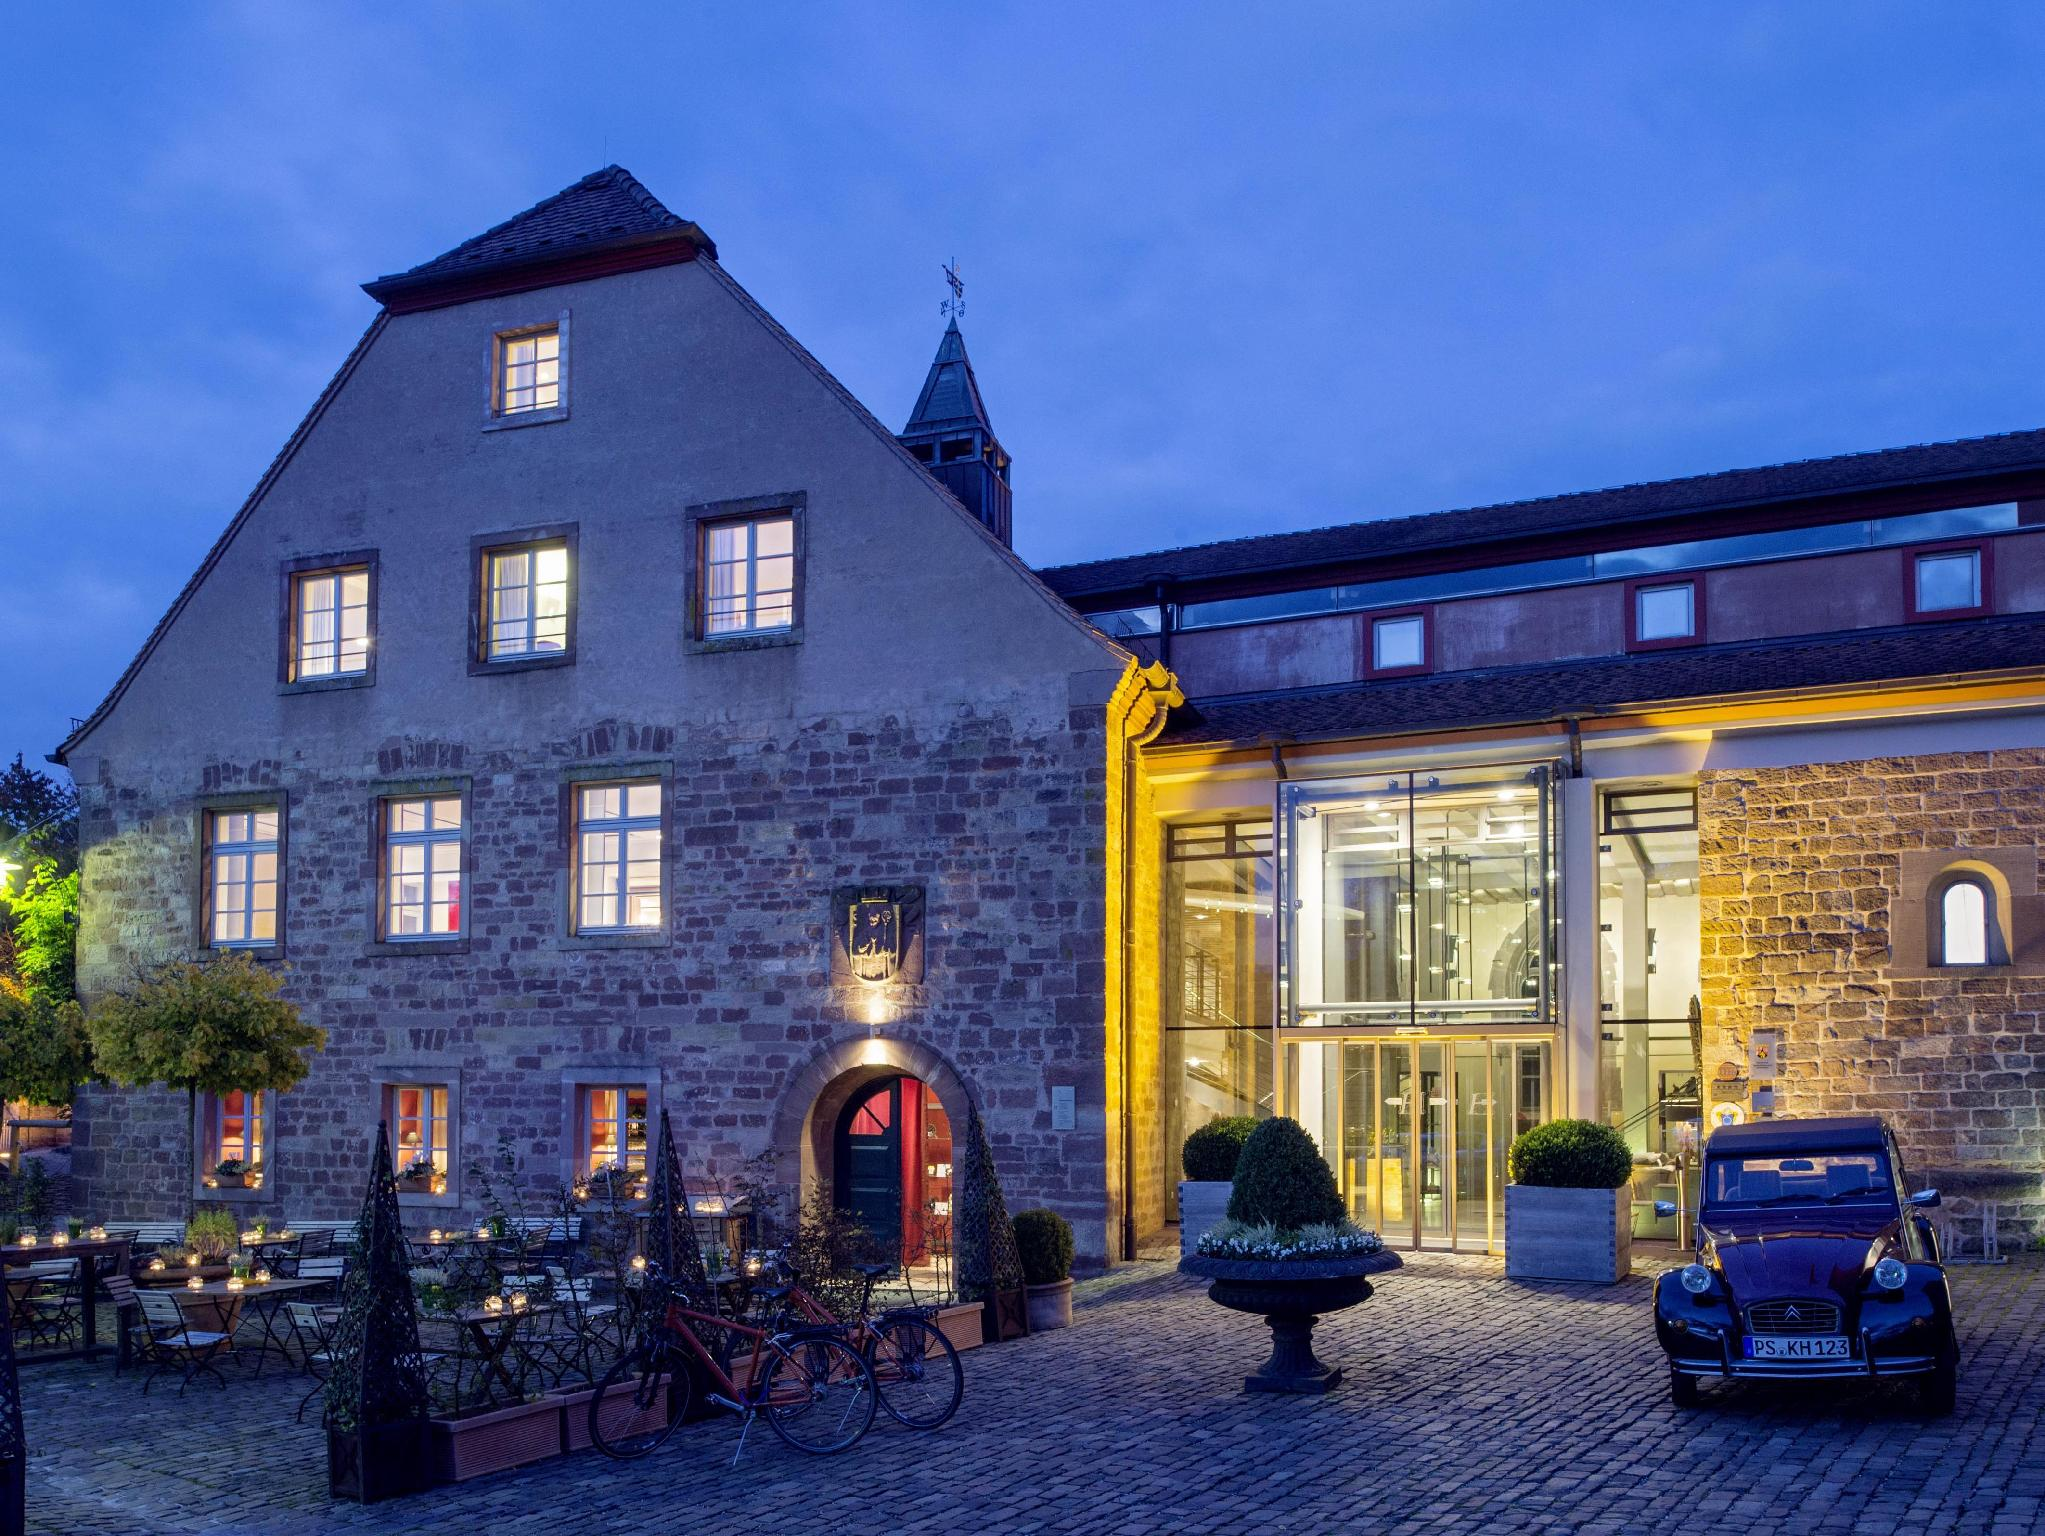 Hornbach Kiel hotels in hornbach germany book hotels and cheap accommodation